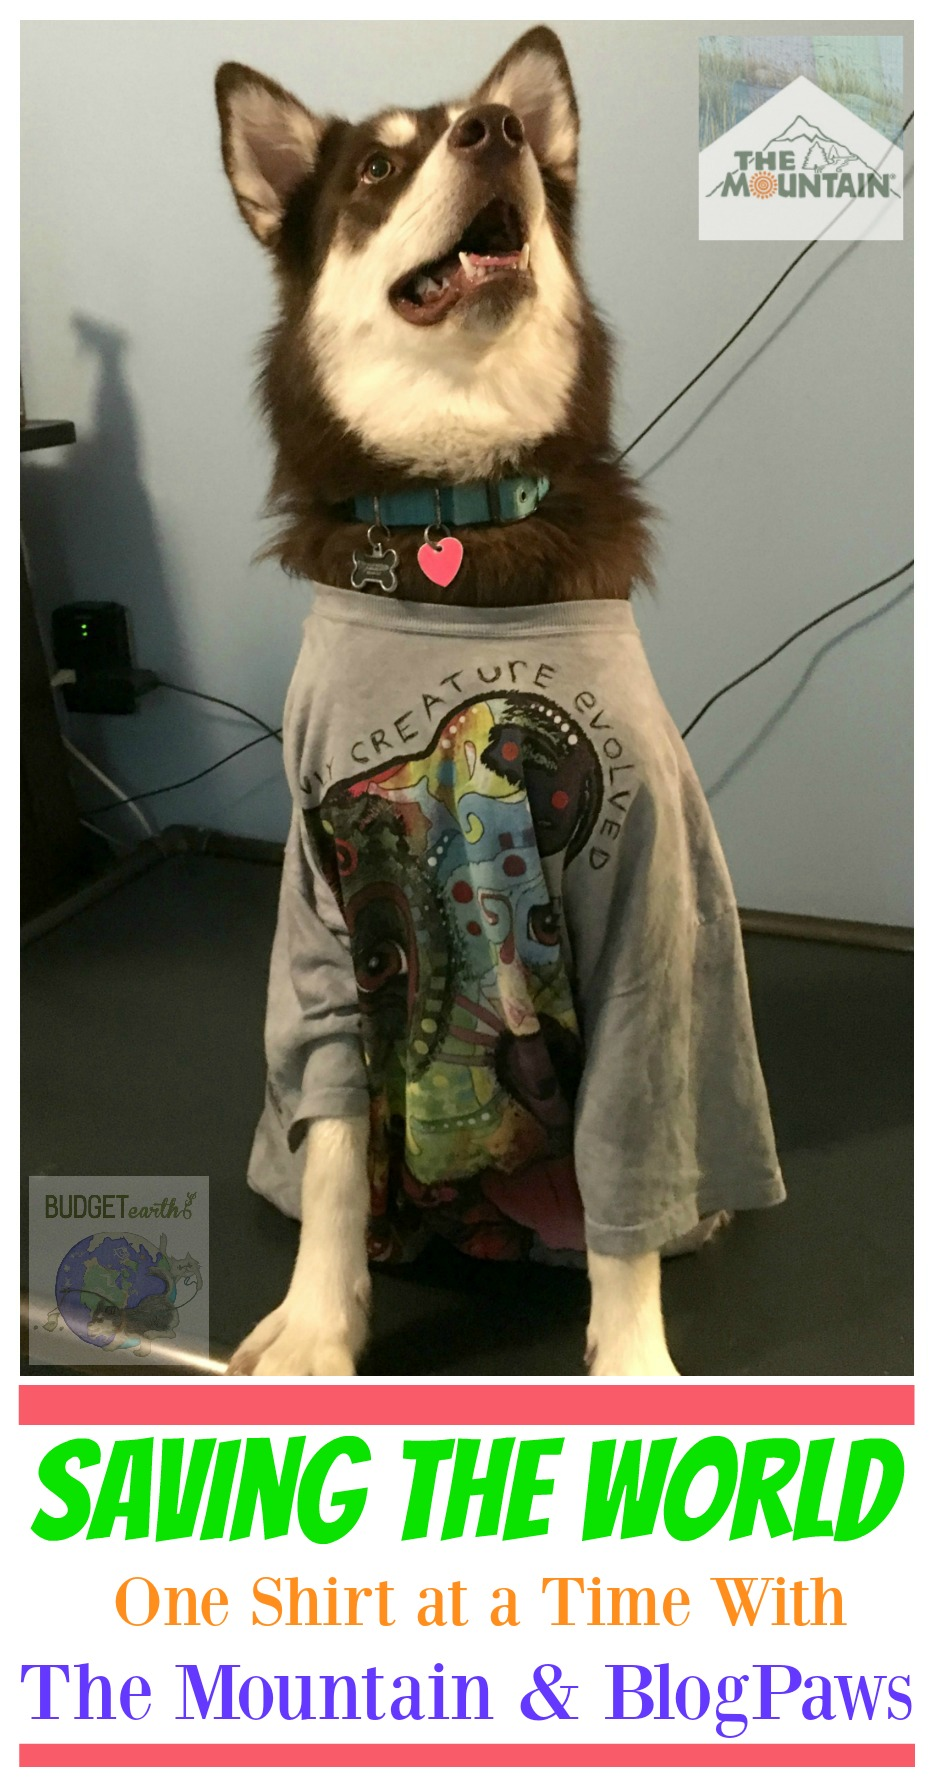 Saving the World One Shirt at a Time with The Mountain & BlogPaws